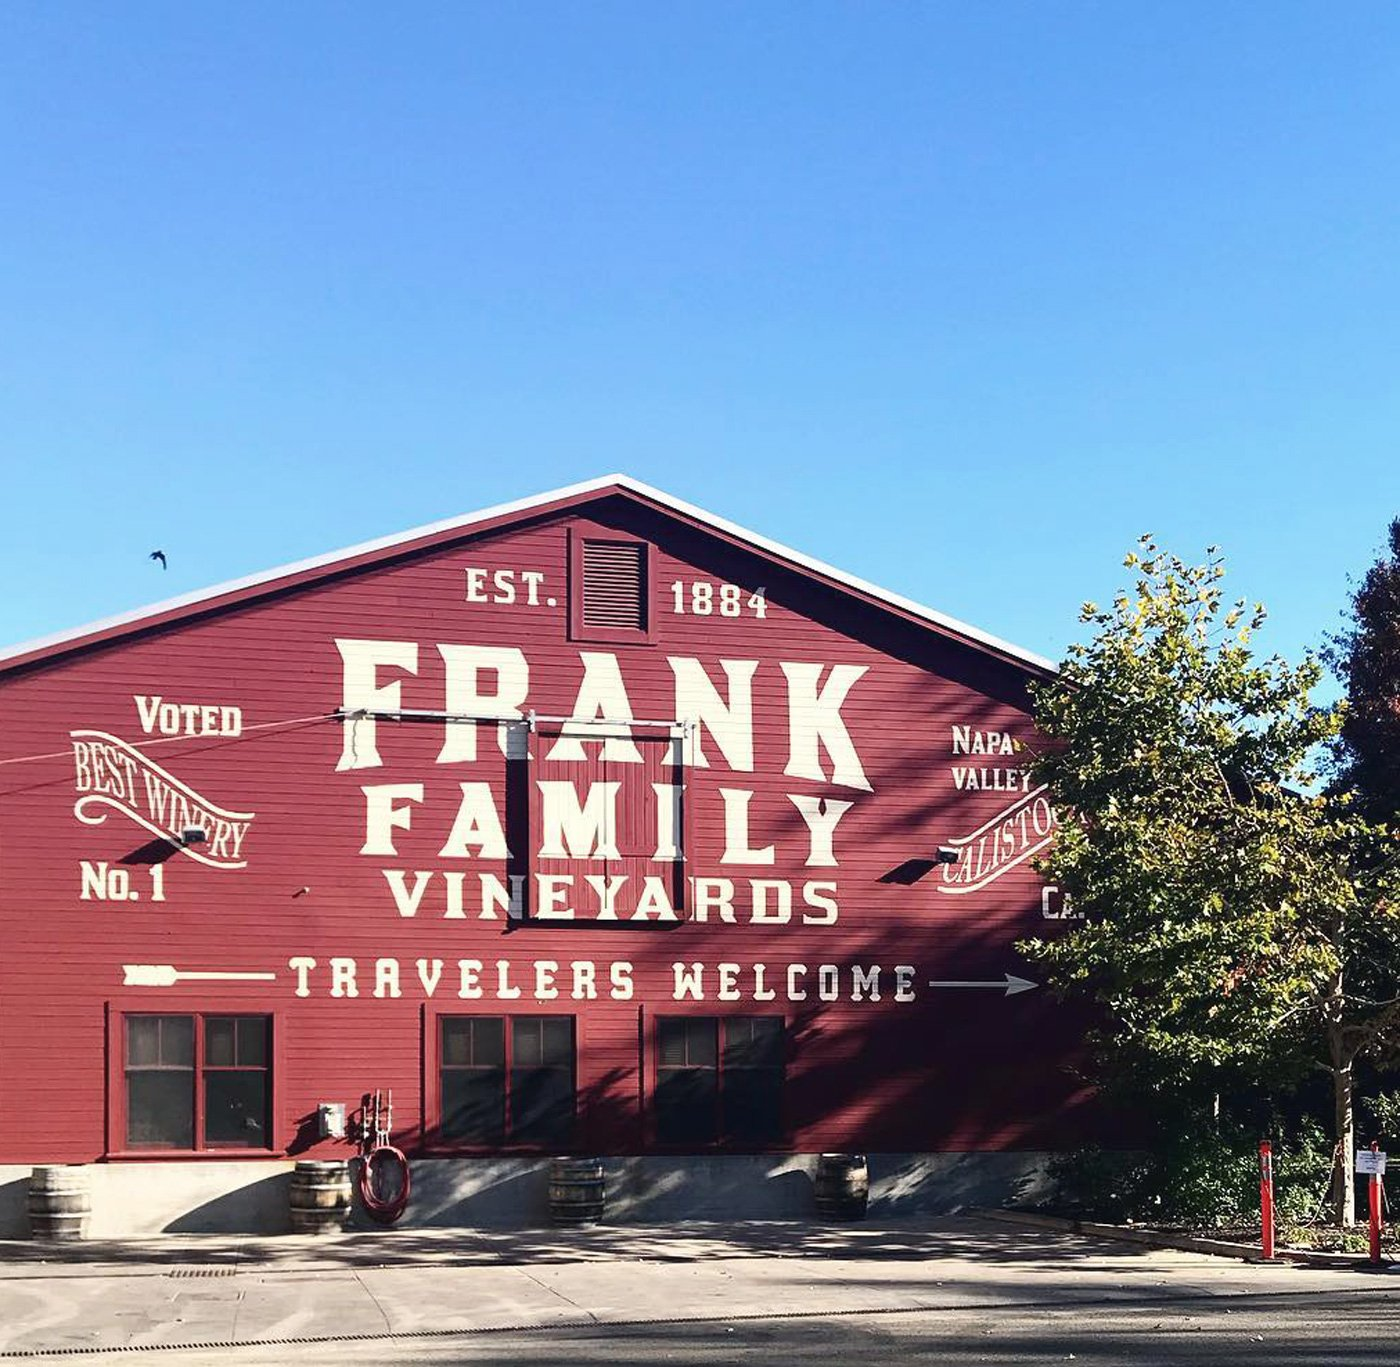 Frank Family Vineyards, Napa Valley.